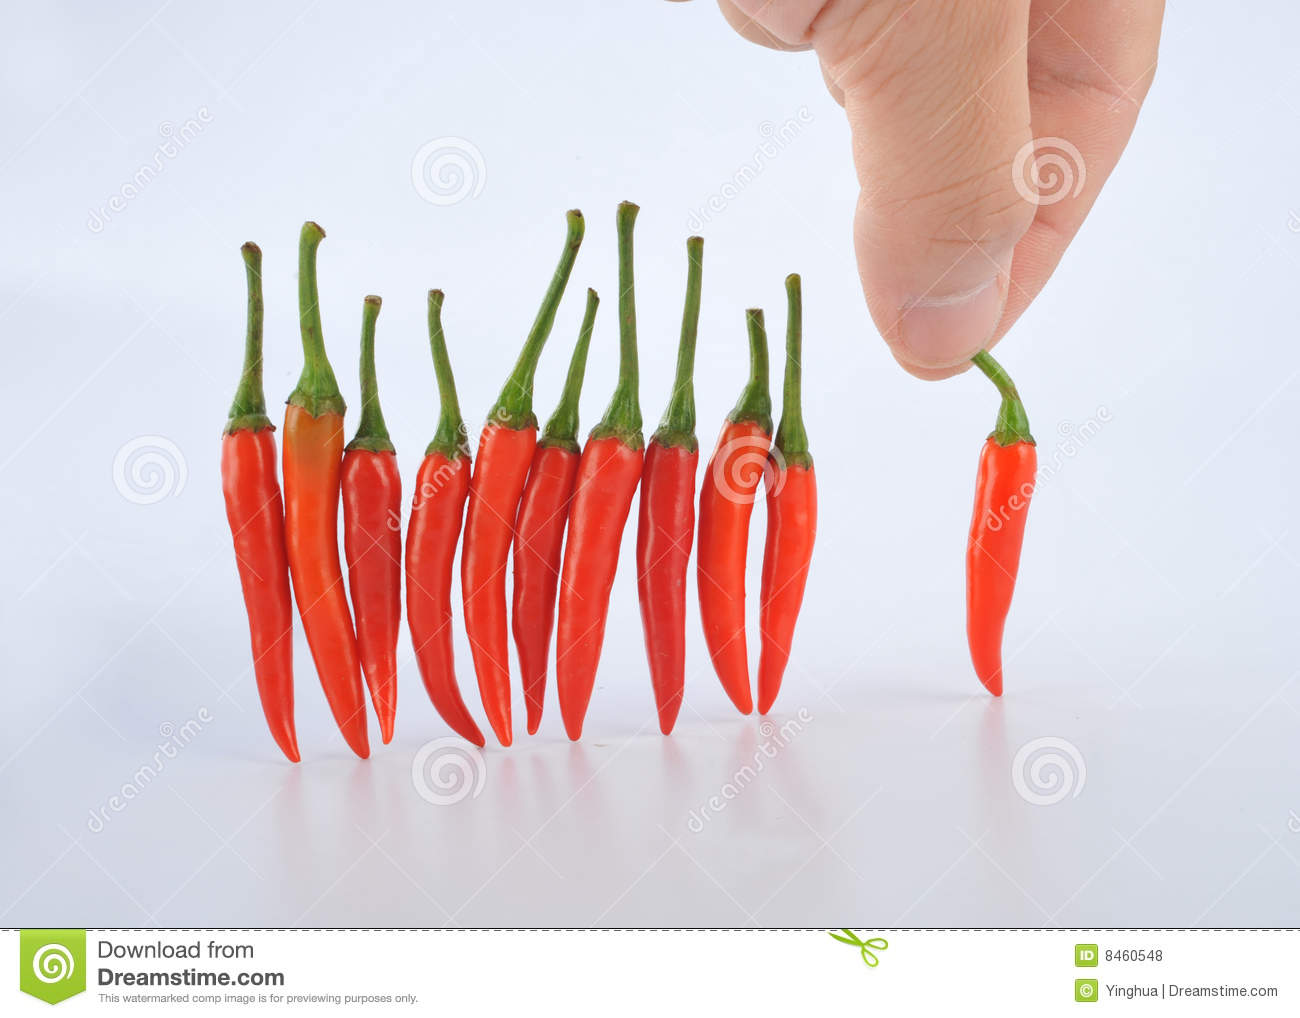 Small Hot Pepper Stock Photo Image Of Dried, Kitchen - 8460548-2575